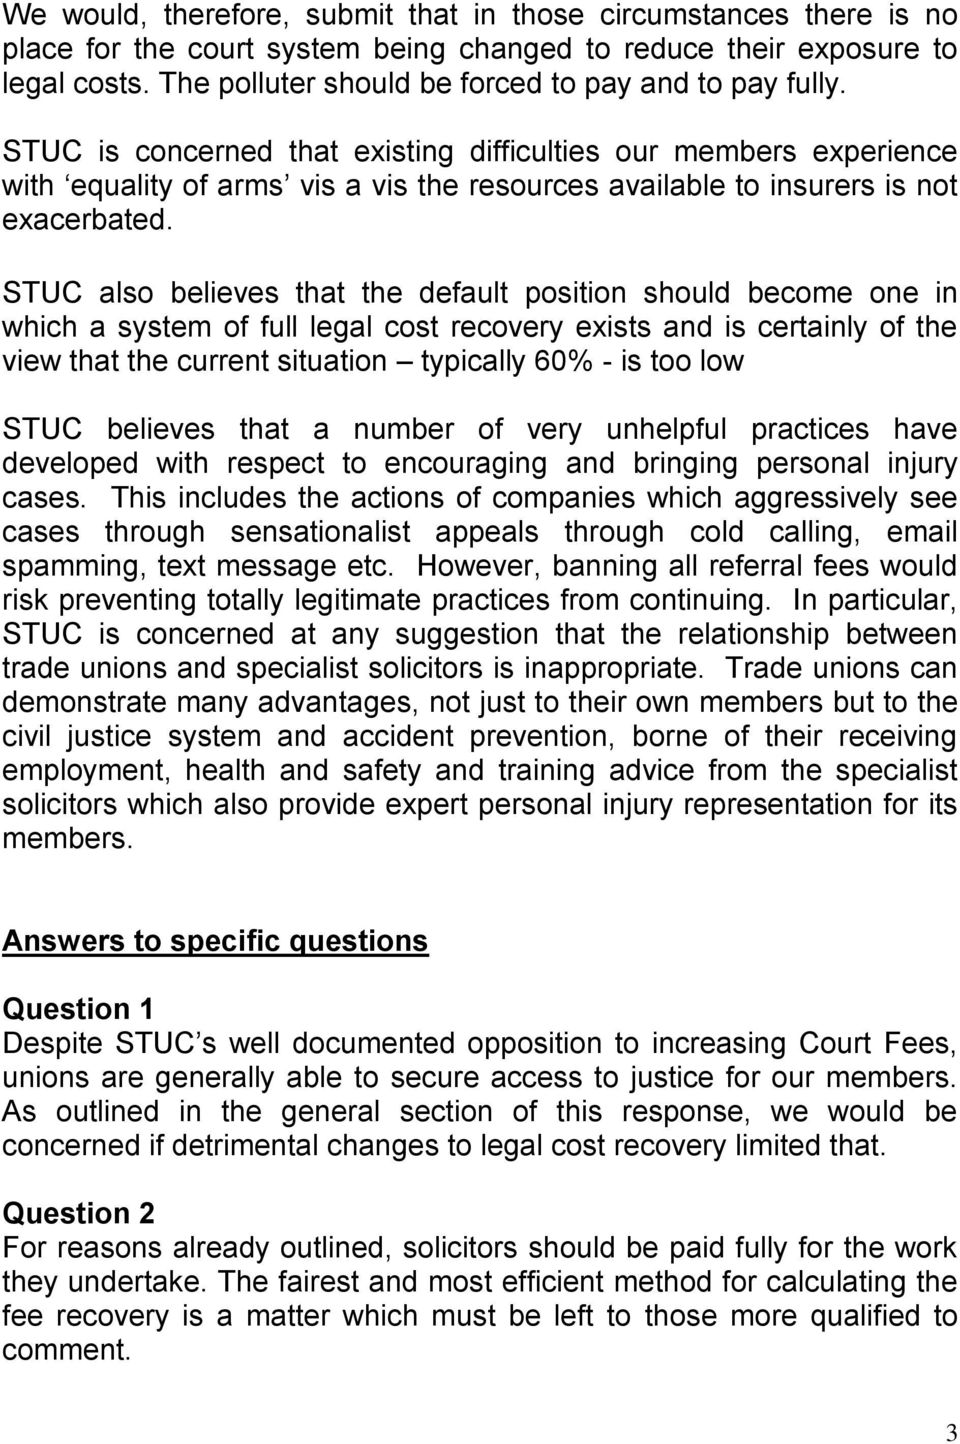 STUC is concerned that existing difficulties our members experience with equality of arms vis a vis the resources available to insurers is not exacerbated.